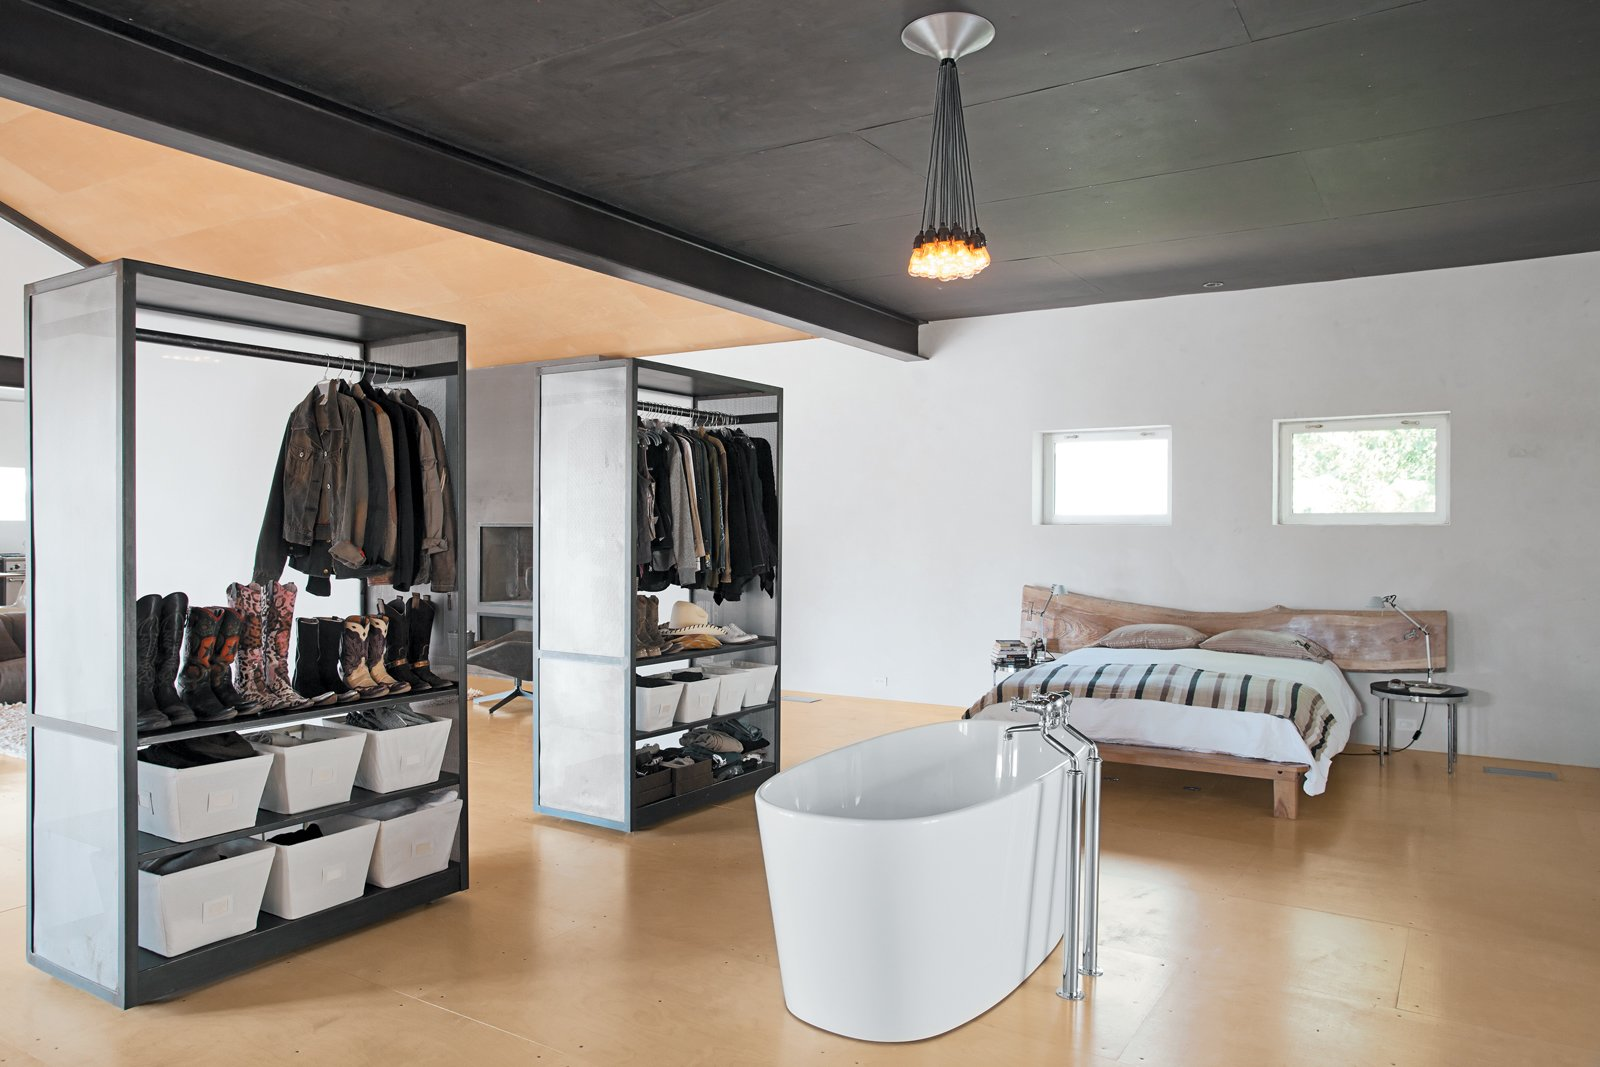 In the bedroom of Barbara Hill's Marta, Texas home, an improbably placed tub is situated in front of two closets that can easily be maneuvered thanks to skateboard wheels affixed to the underside.